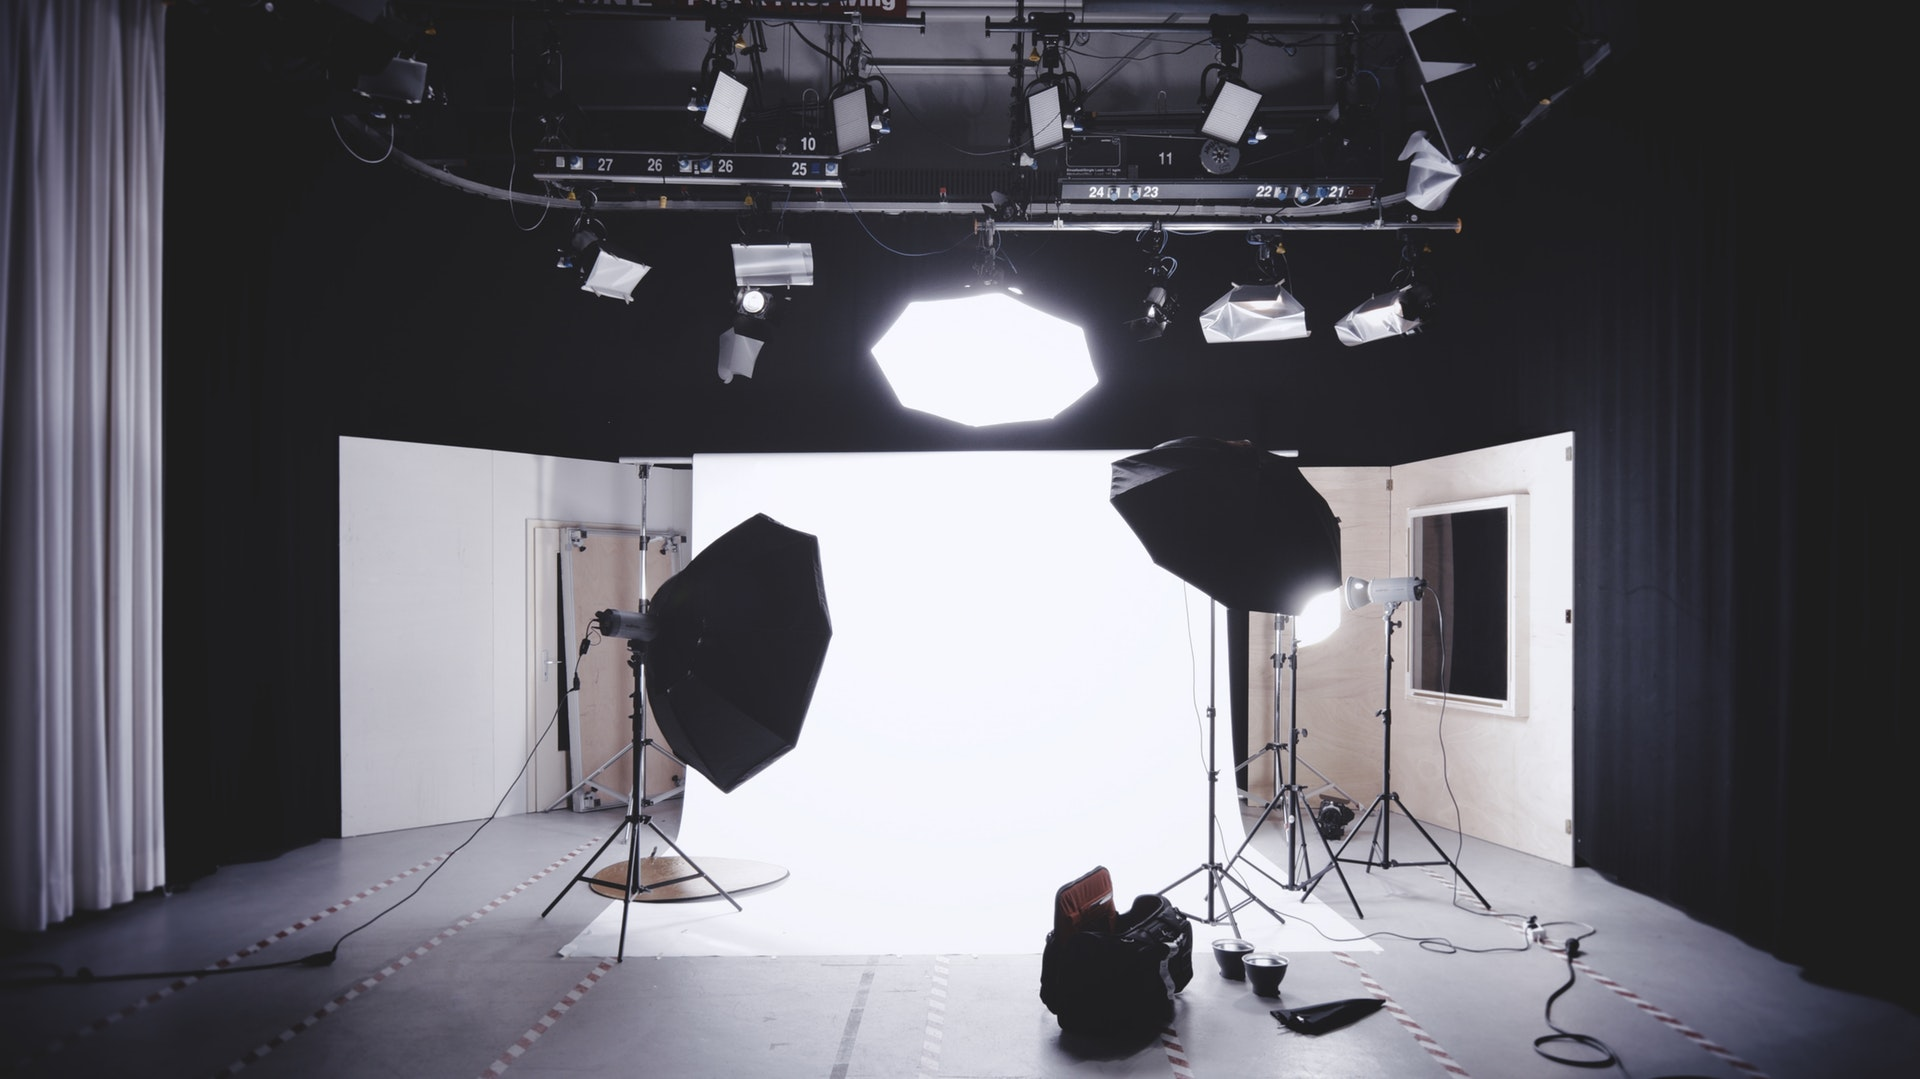 Lighting Conditions to Use for Photography Indoors